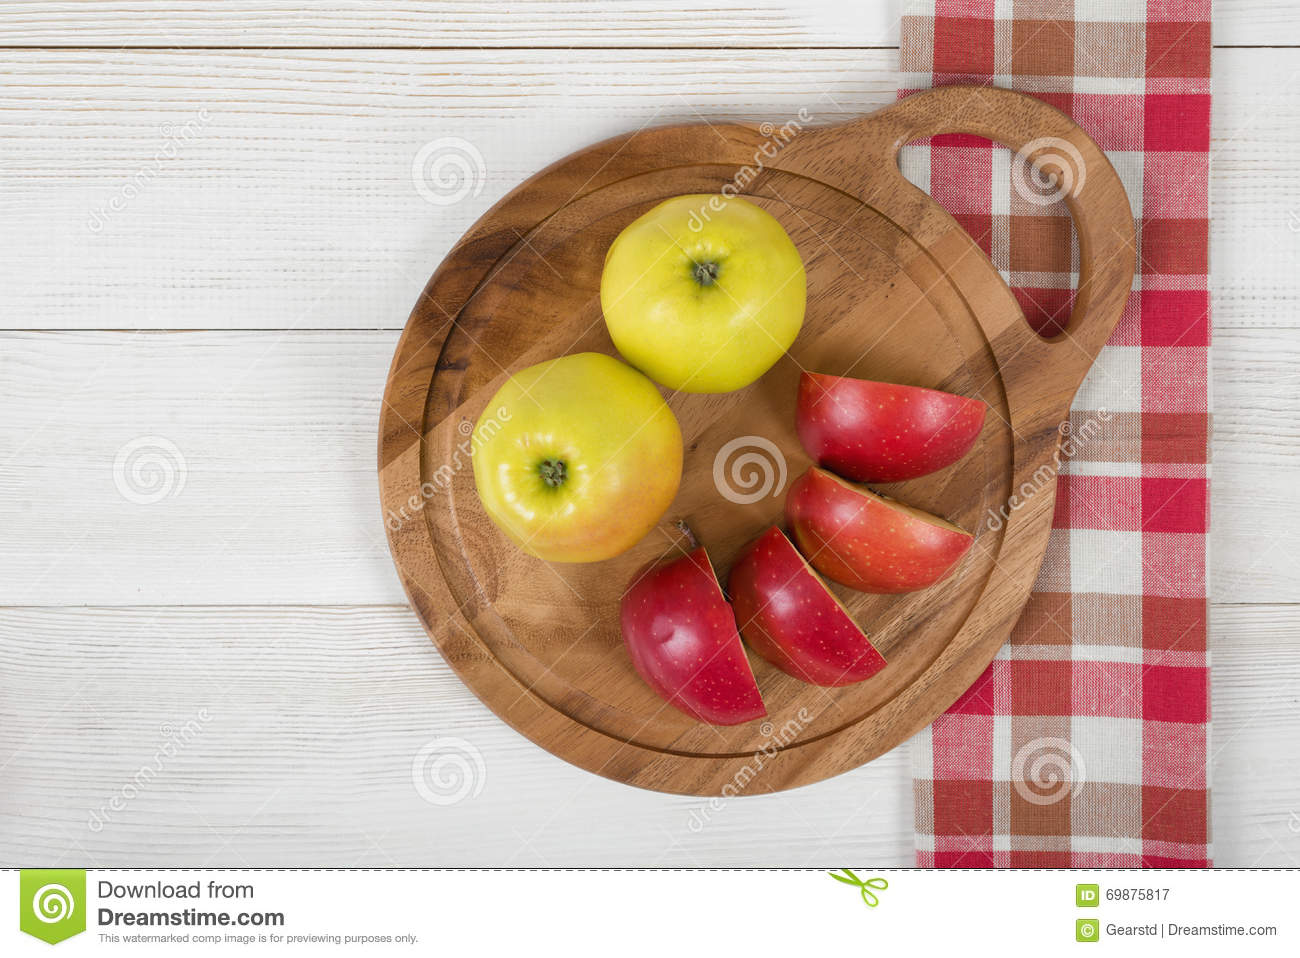 Yellow and red apples laid on a cutting wooden board